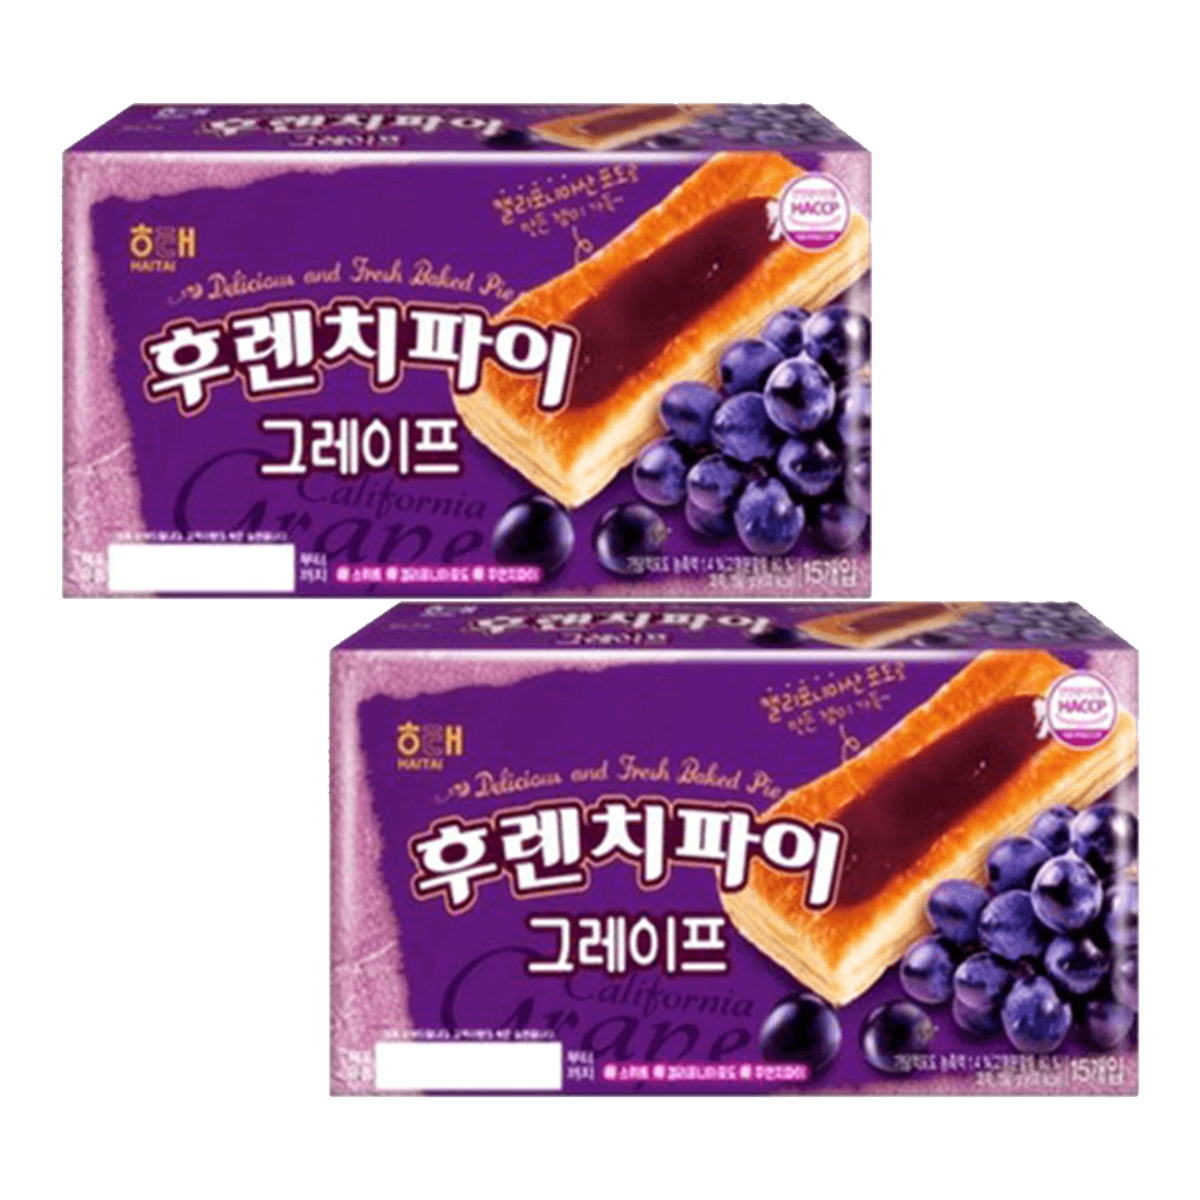 Haitai French pie (grape) 192g x 2